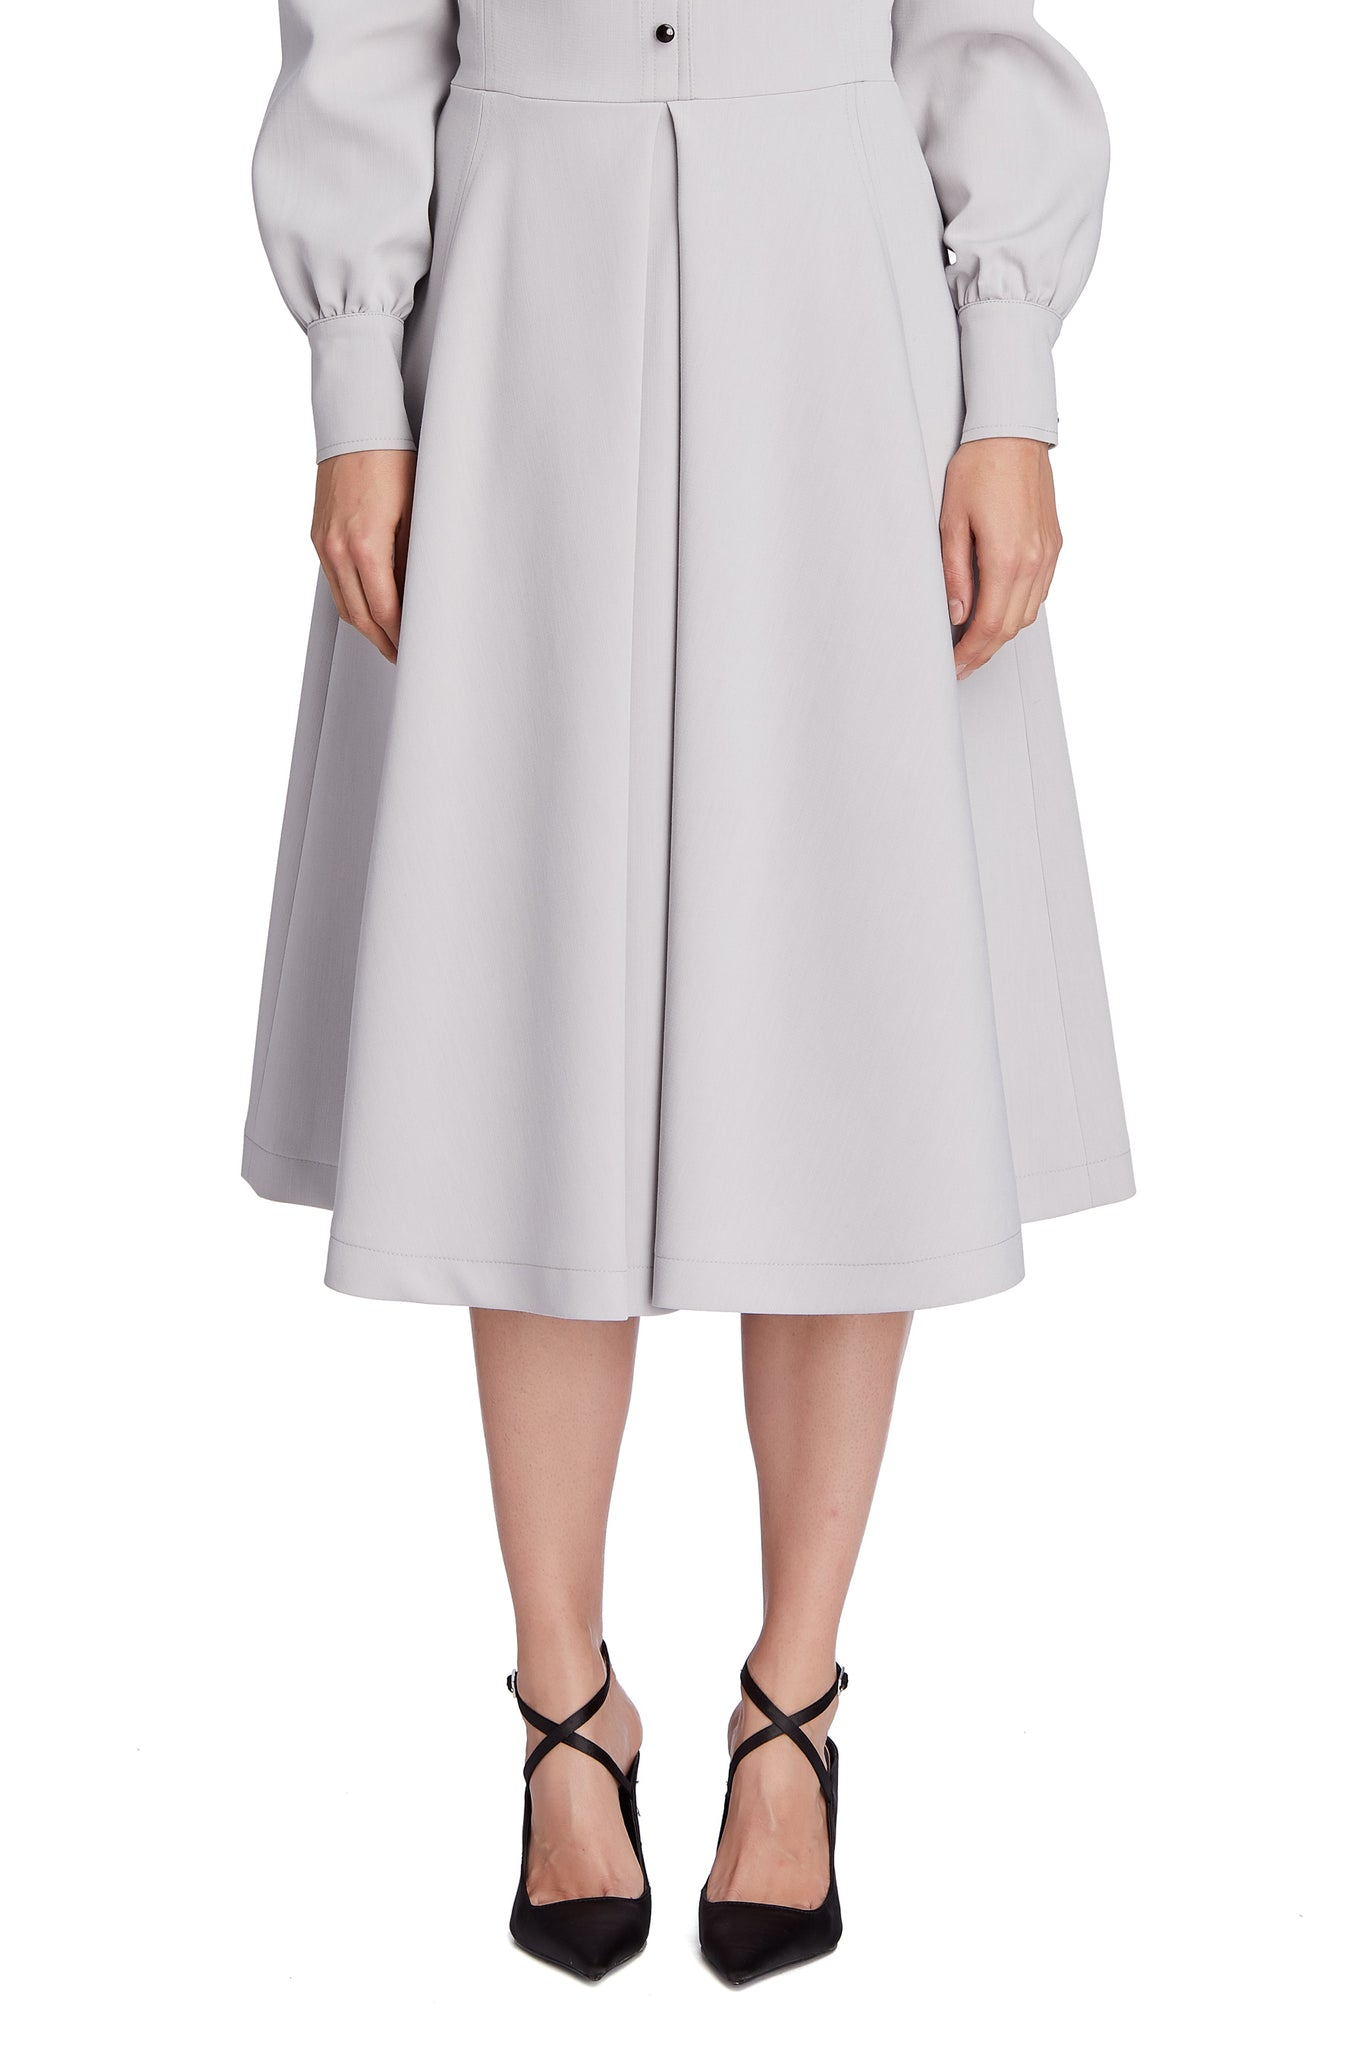 Nora Dress | Robe Nora